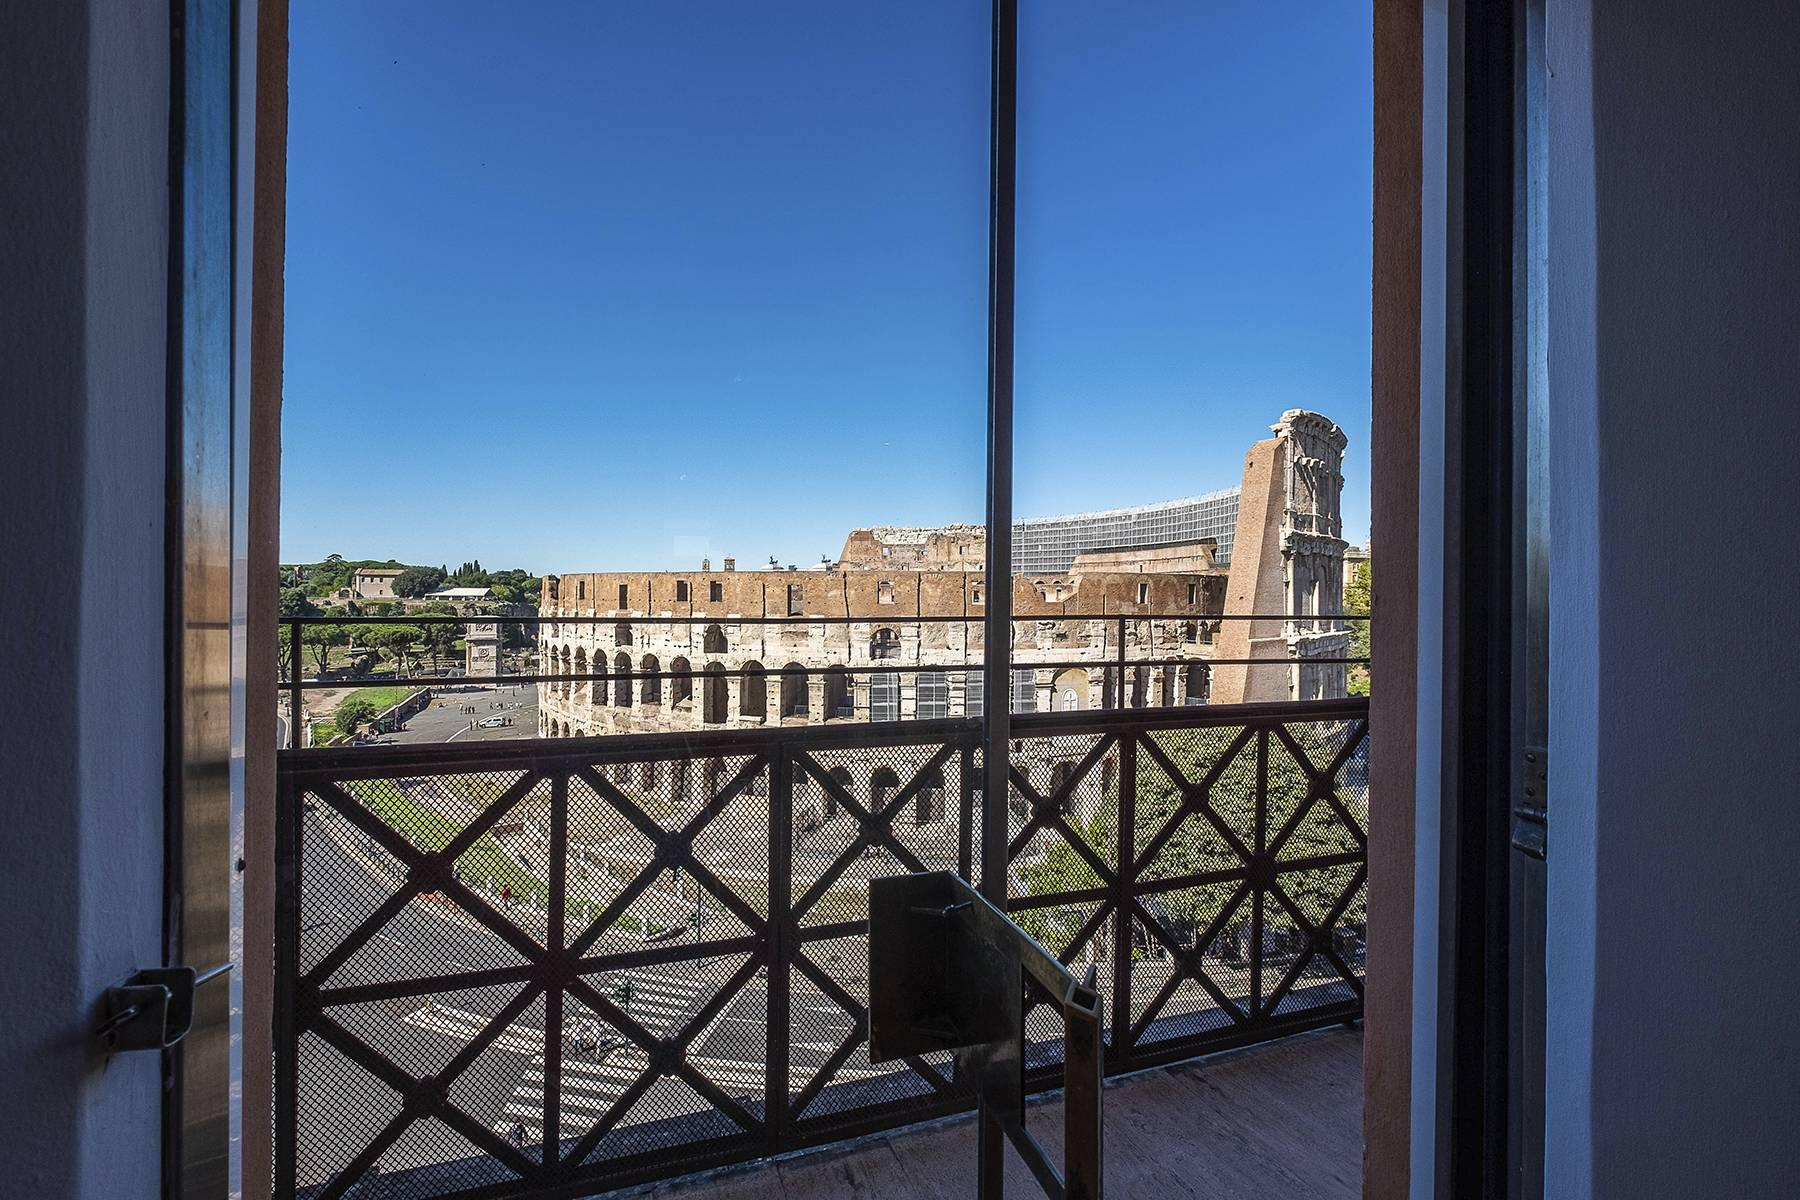 Charming apartment with a fine view of the Colosseum - 3